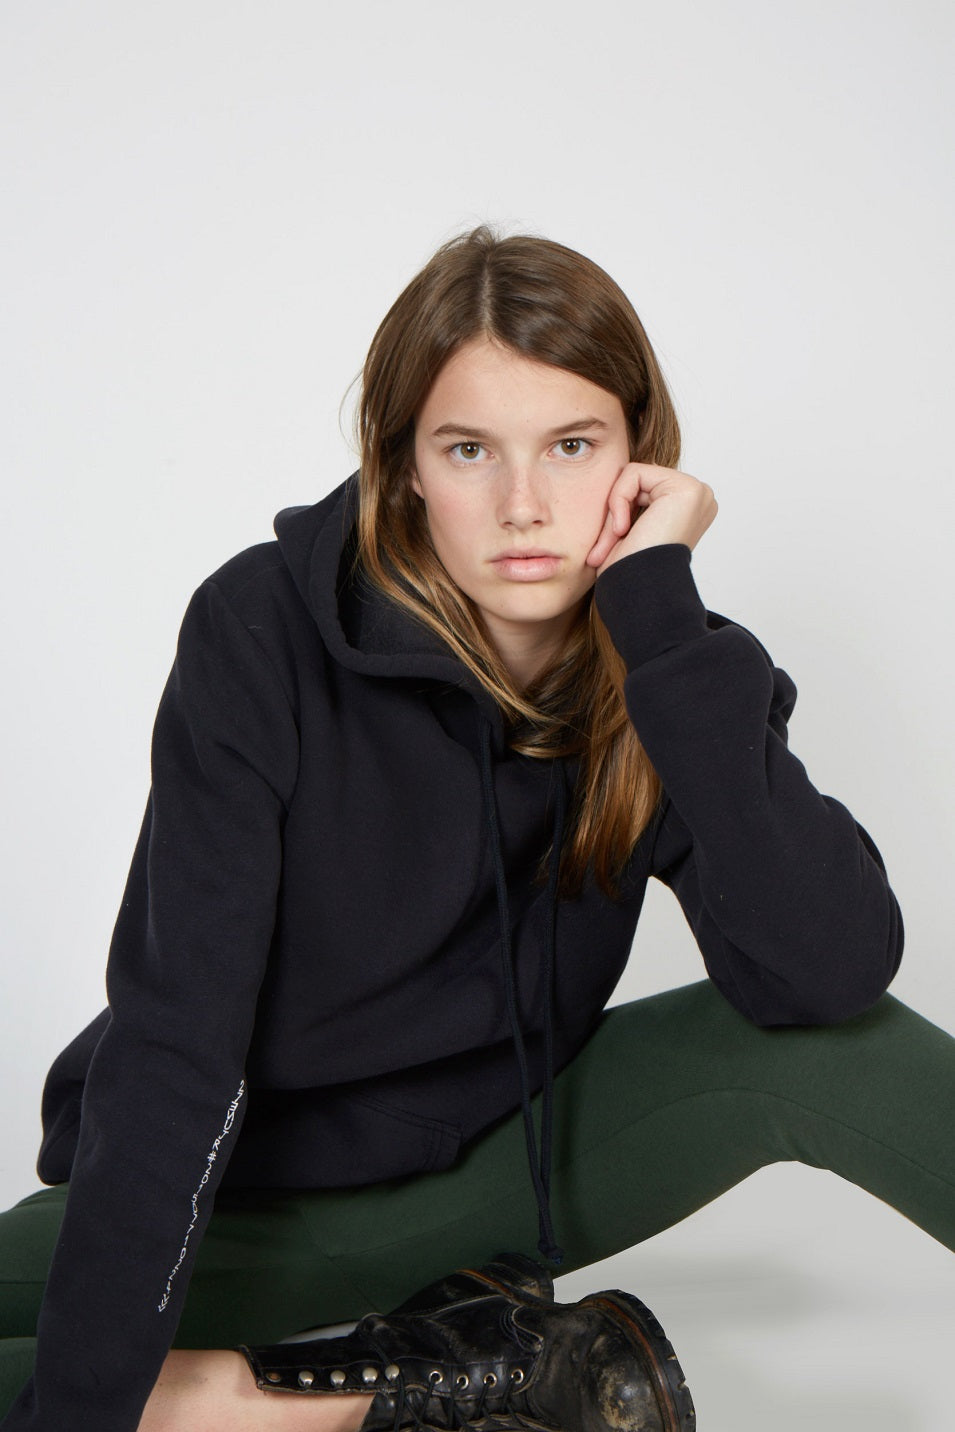 ANDRO SWEATSHIRT - europe.june72.com